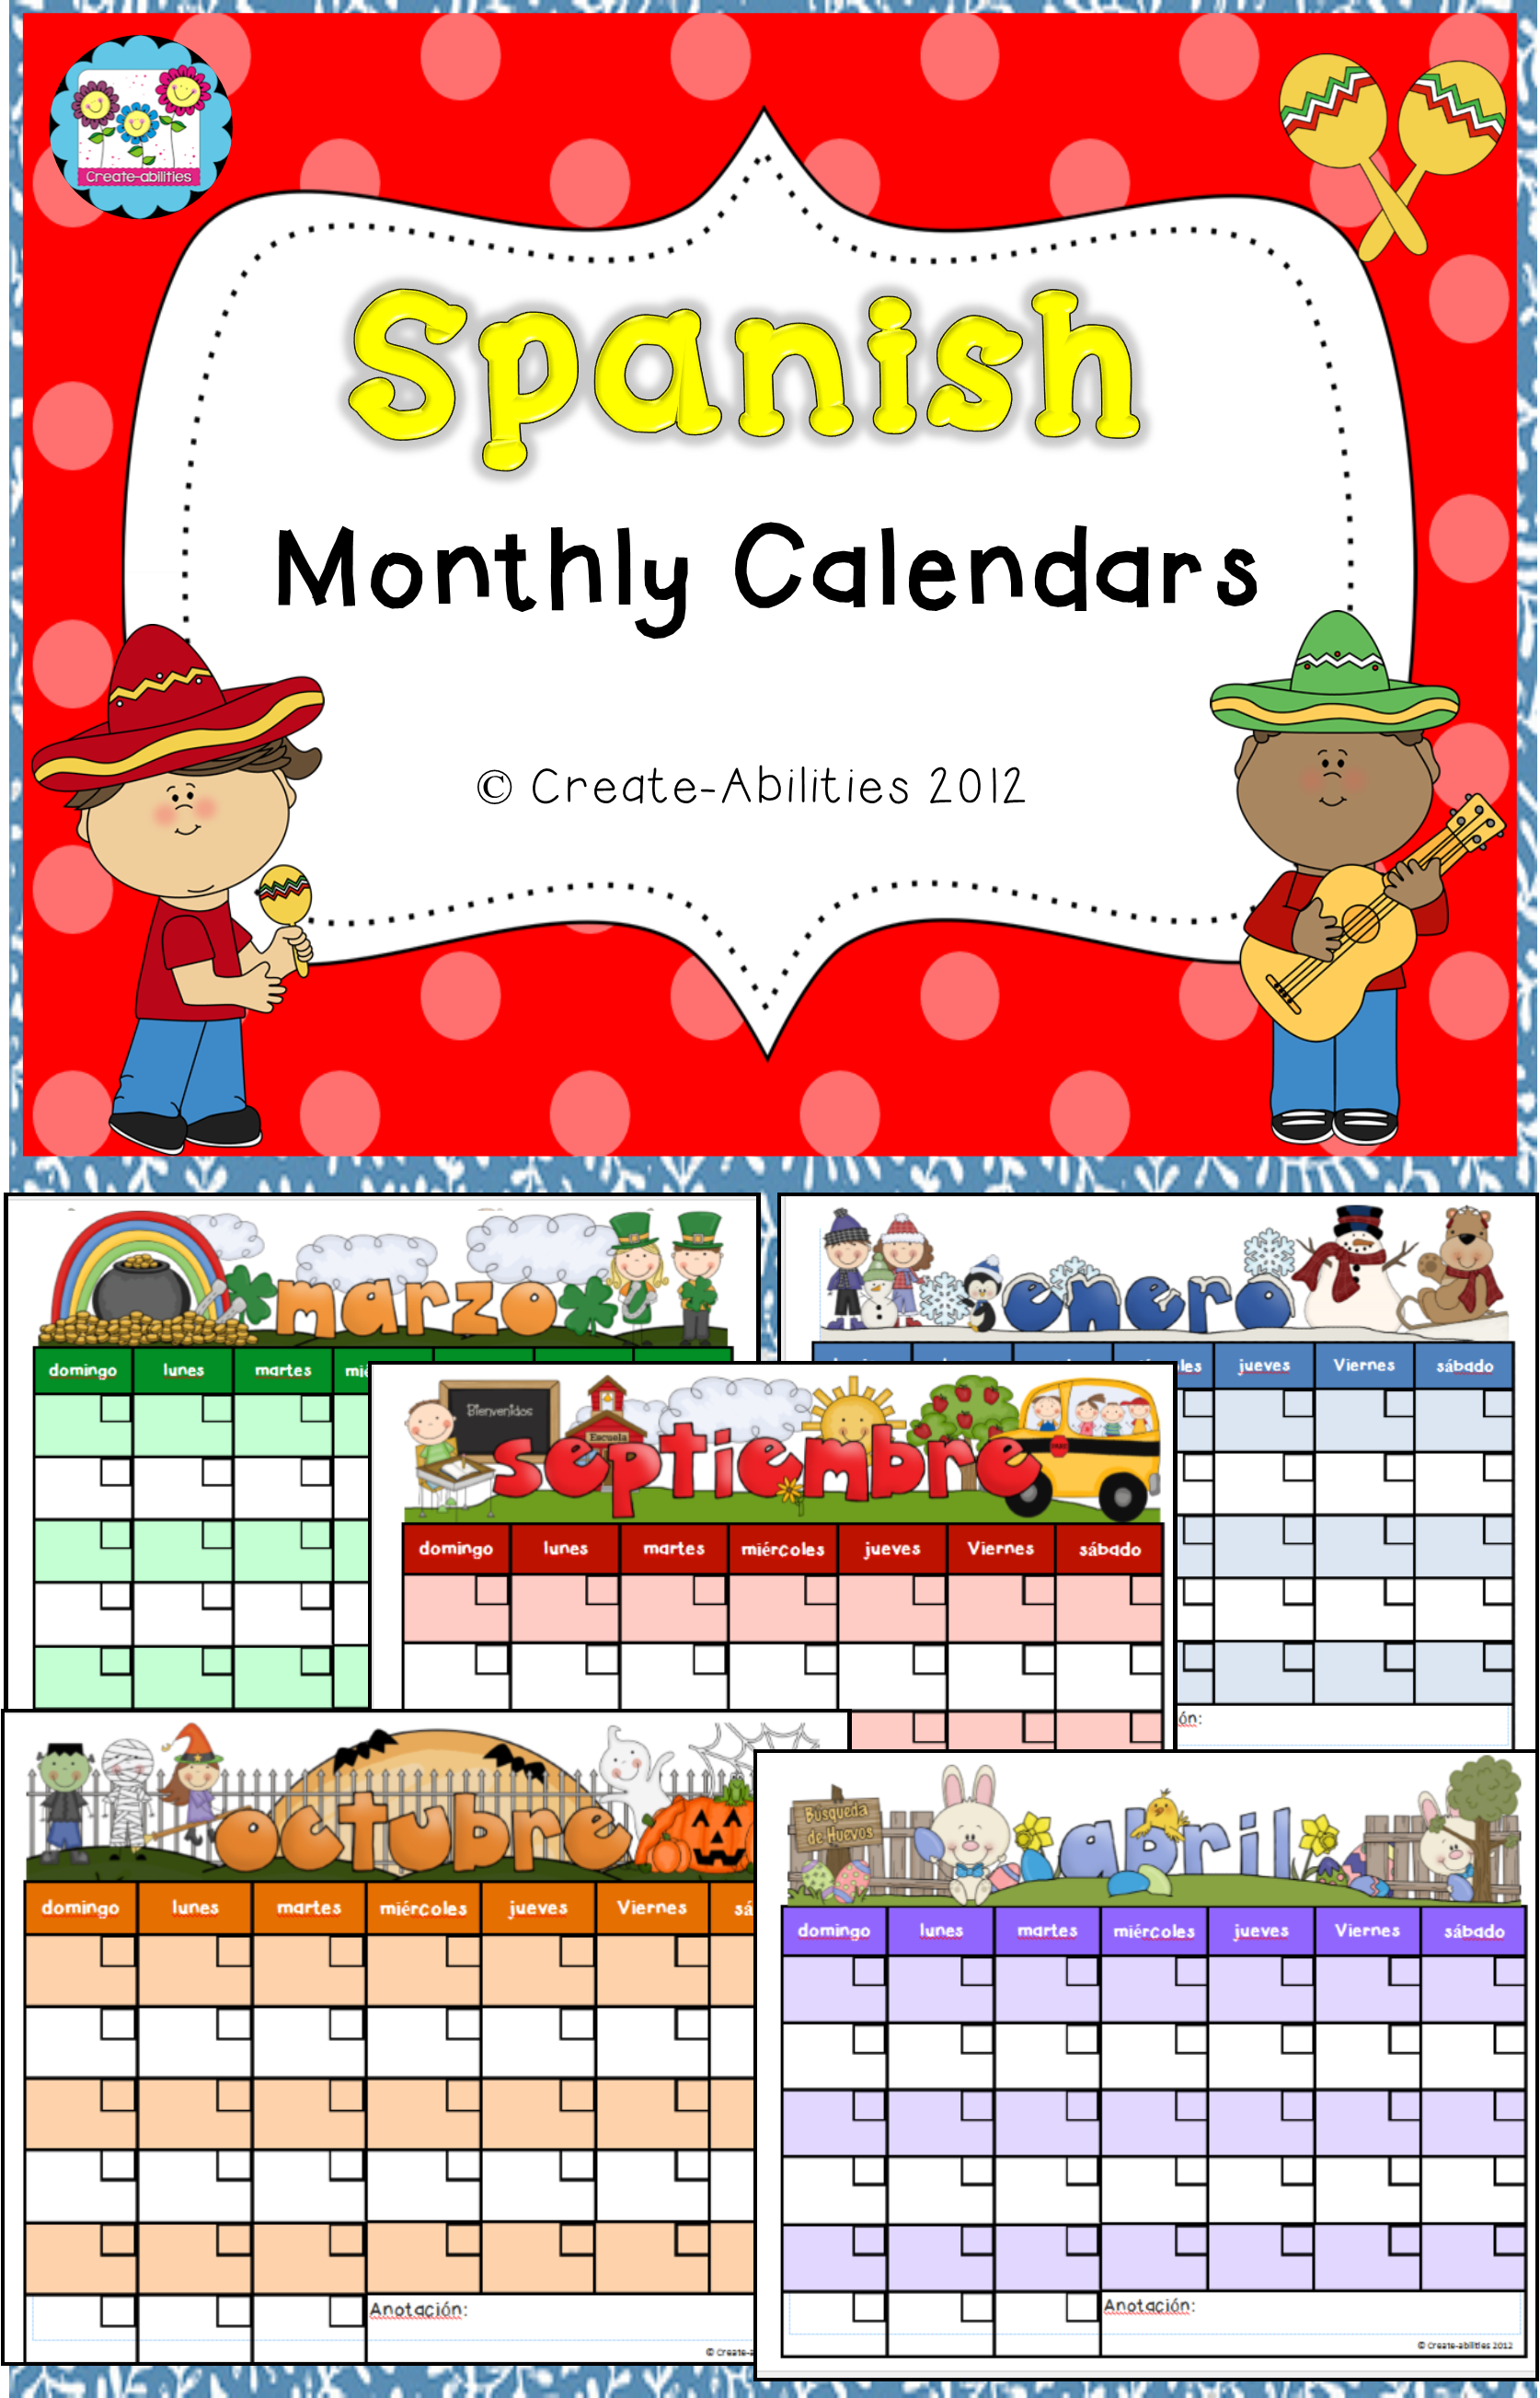 FREE! Monthly calendars in Spanish!